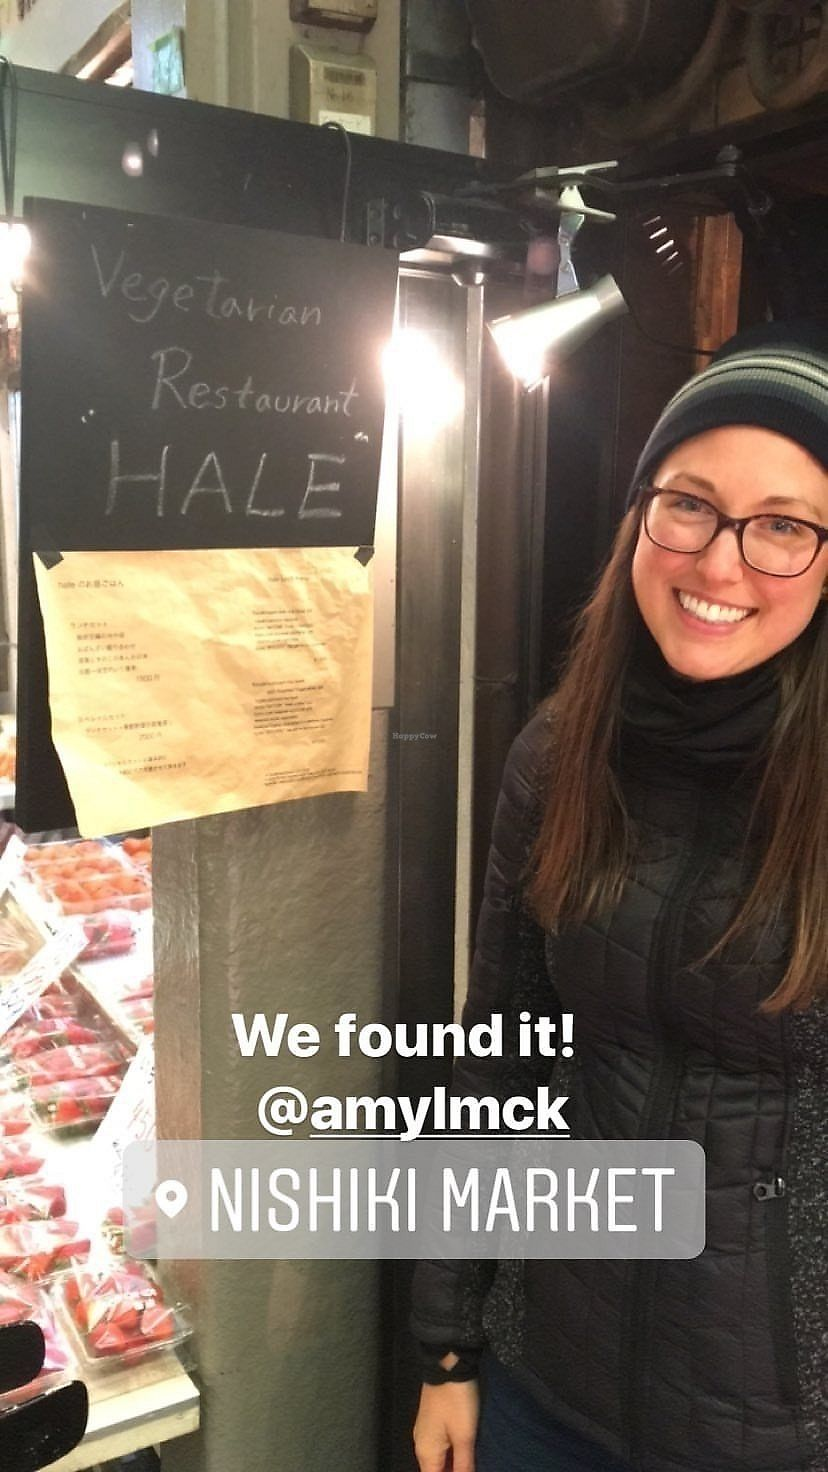 """Photo of Oasi @ Hale  by <a href=""""/members/profile/AmyMcKinnon"""">AmyMcKinnon</a> <br/>The entry sign to Hale in Nishiki markets  <br/> January 29, 2018  - <a href='/contact/abuse/image/16523/352163'>Report</a>"""